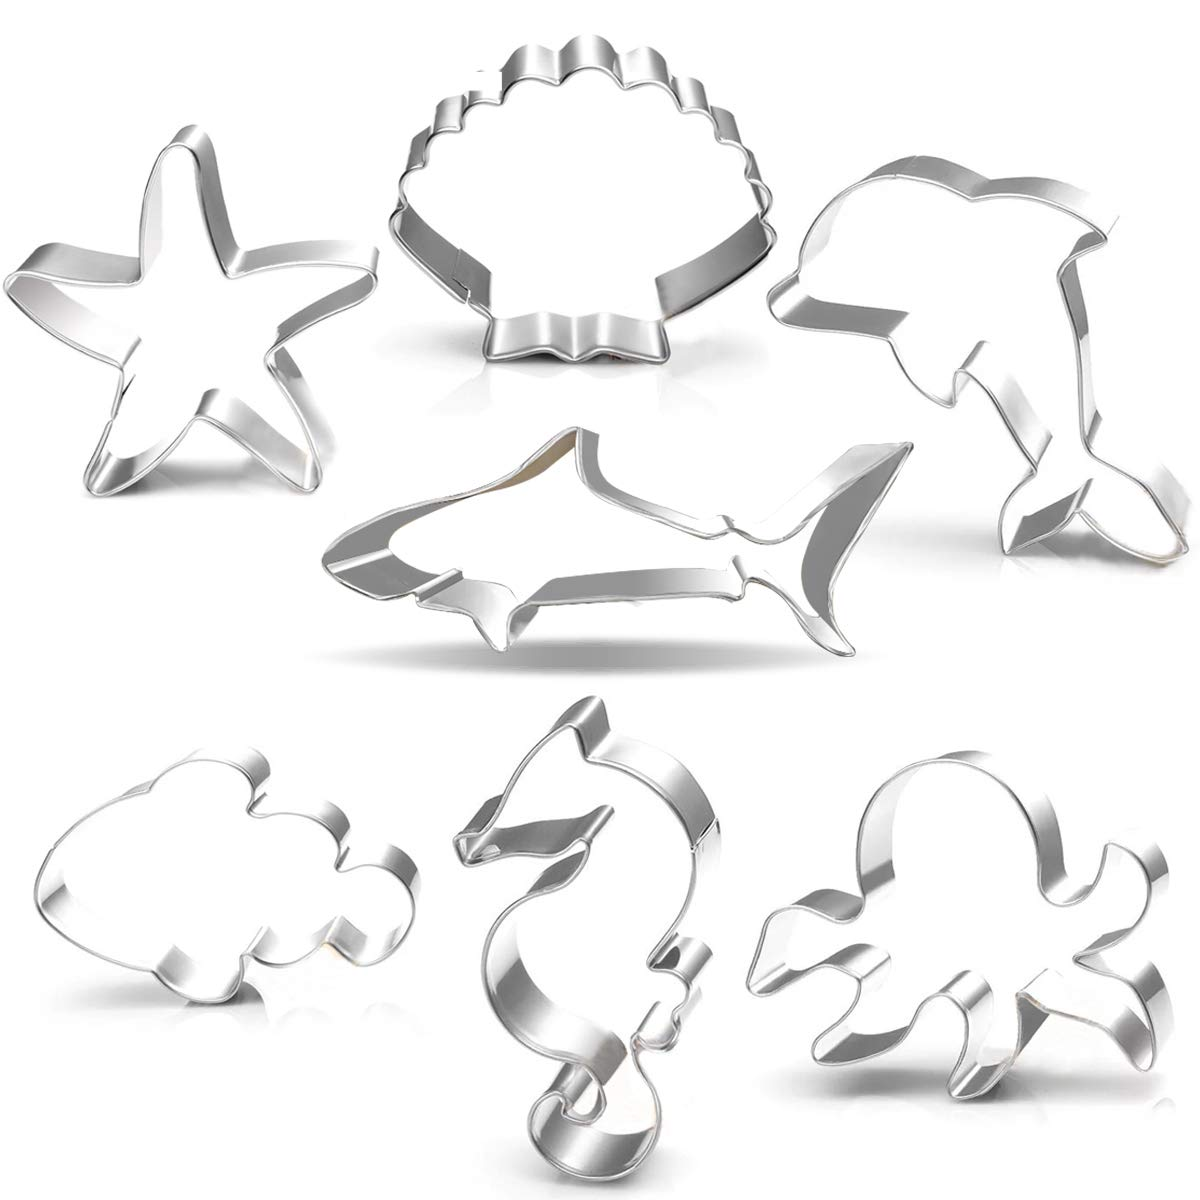 Under The Sea Creatures Cookie Cutter Set-3.5'' 3''-7 Piece-Shark, Seastar, Seashell, Seahorse, Whale, Octopus, Fish Cookie Cutters Molds Kids Birthday Party Supplies Favors.